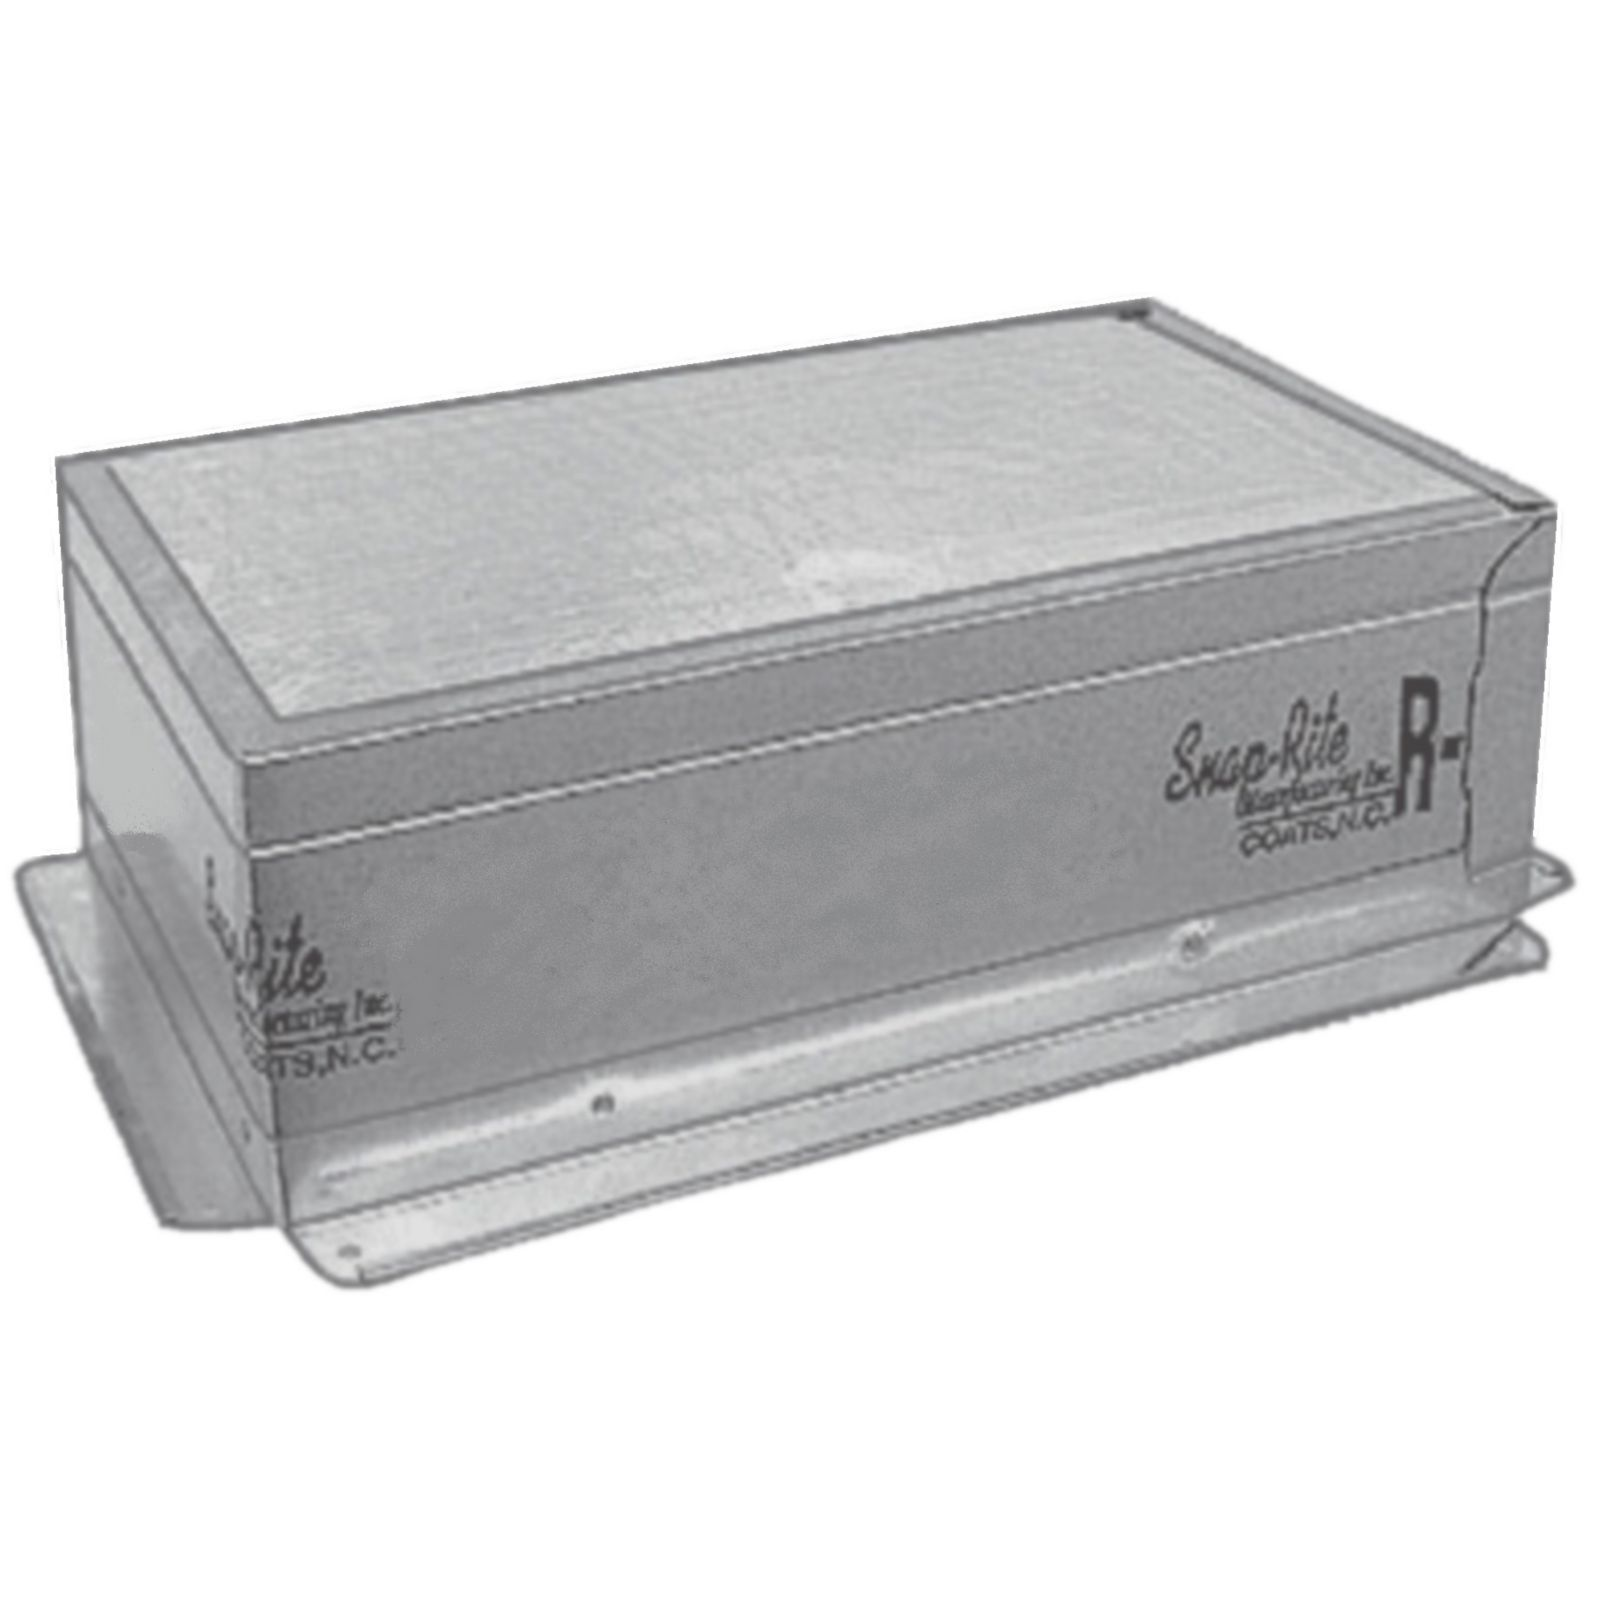 "Snap-Rite 20X20-3800F - Foil Top Insulated Register Box With Flange, 20"" x 20"" - R6"